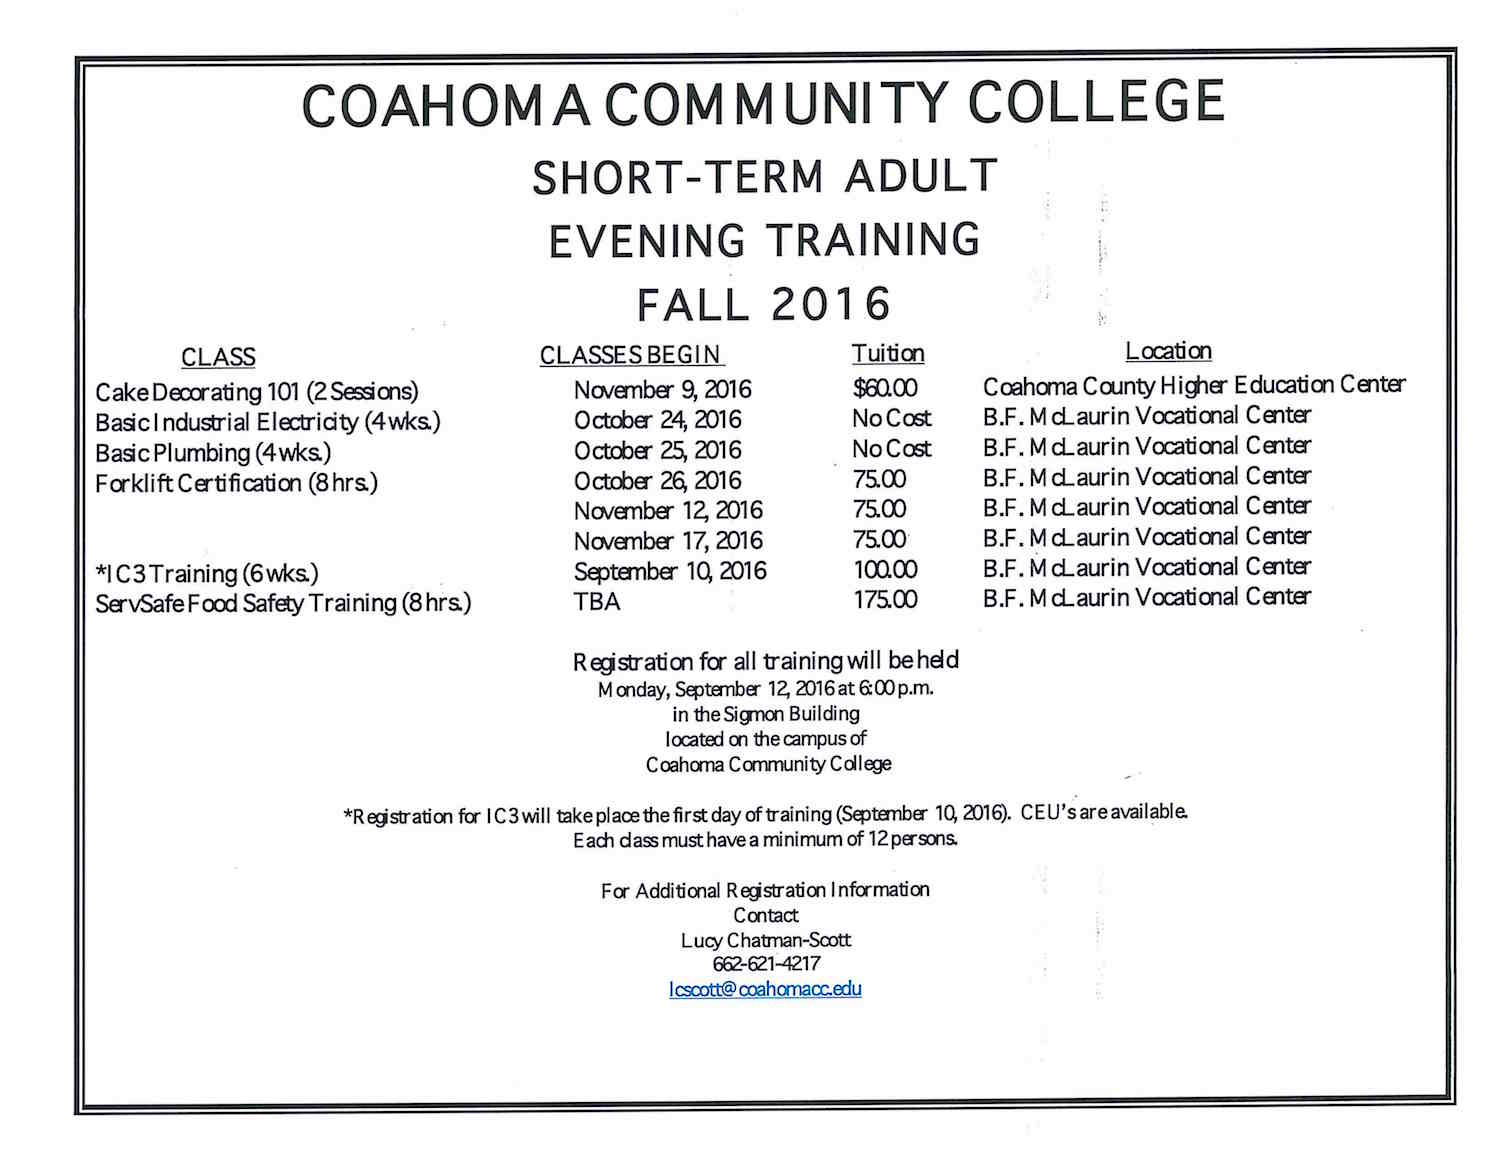 Ccc offering wide range of short term adult evening trainings cfakepathccc fall 2016 short term trainingg 1betcityfo Images